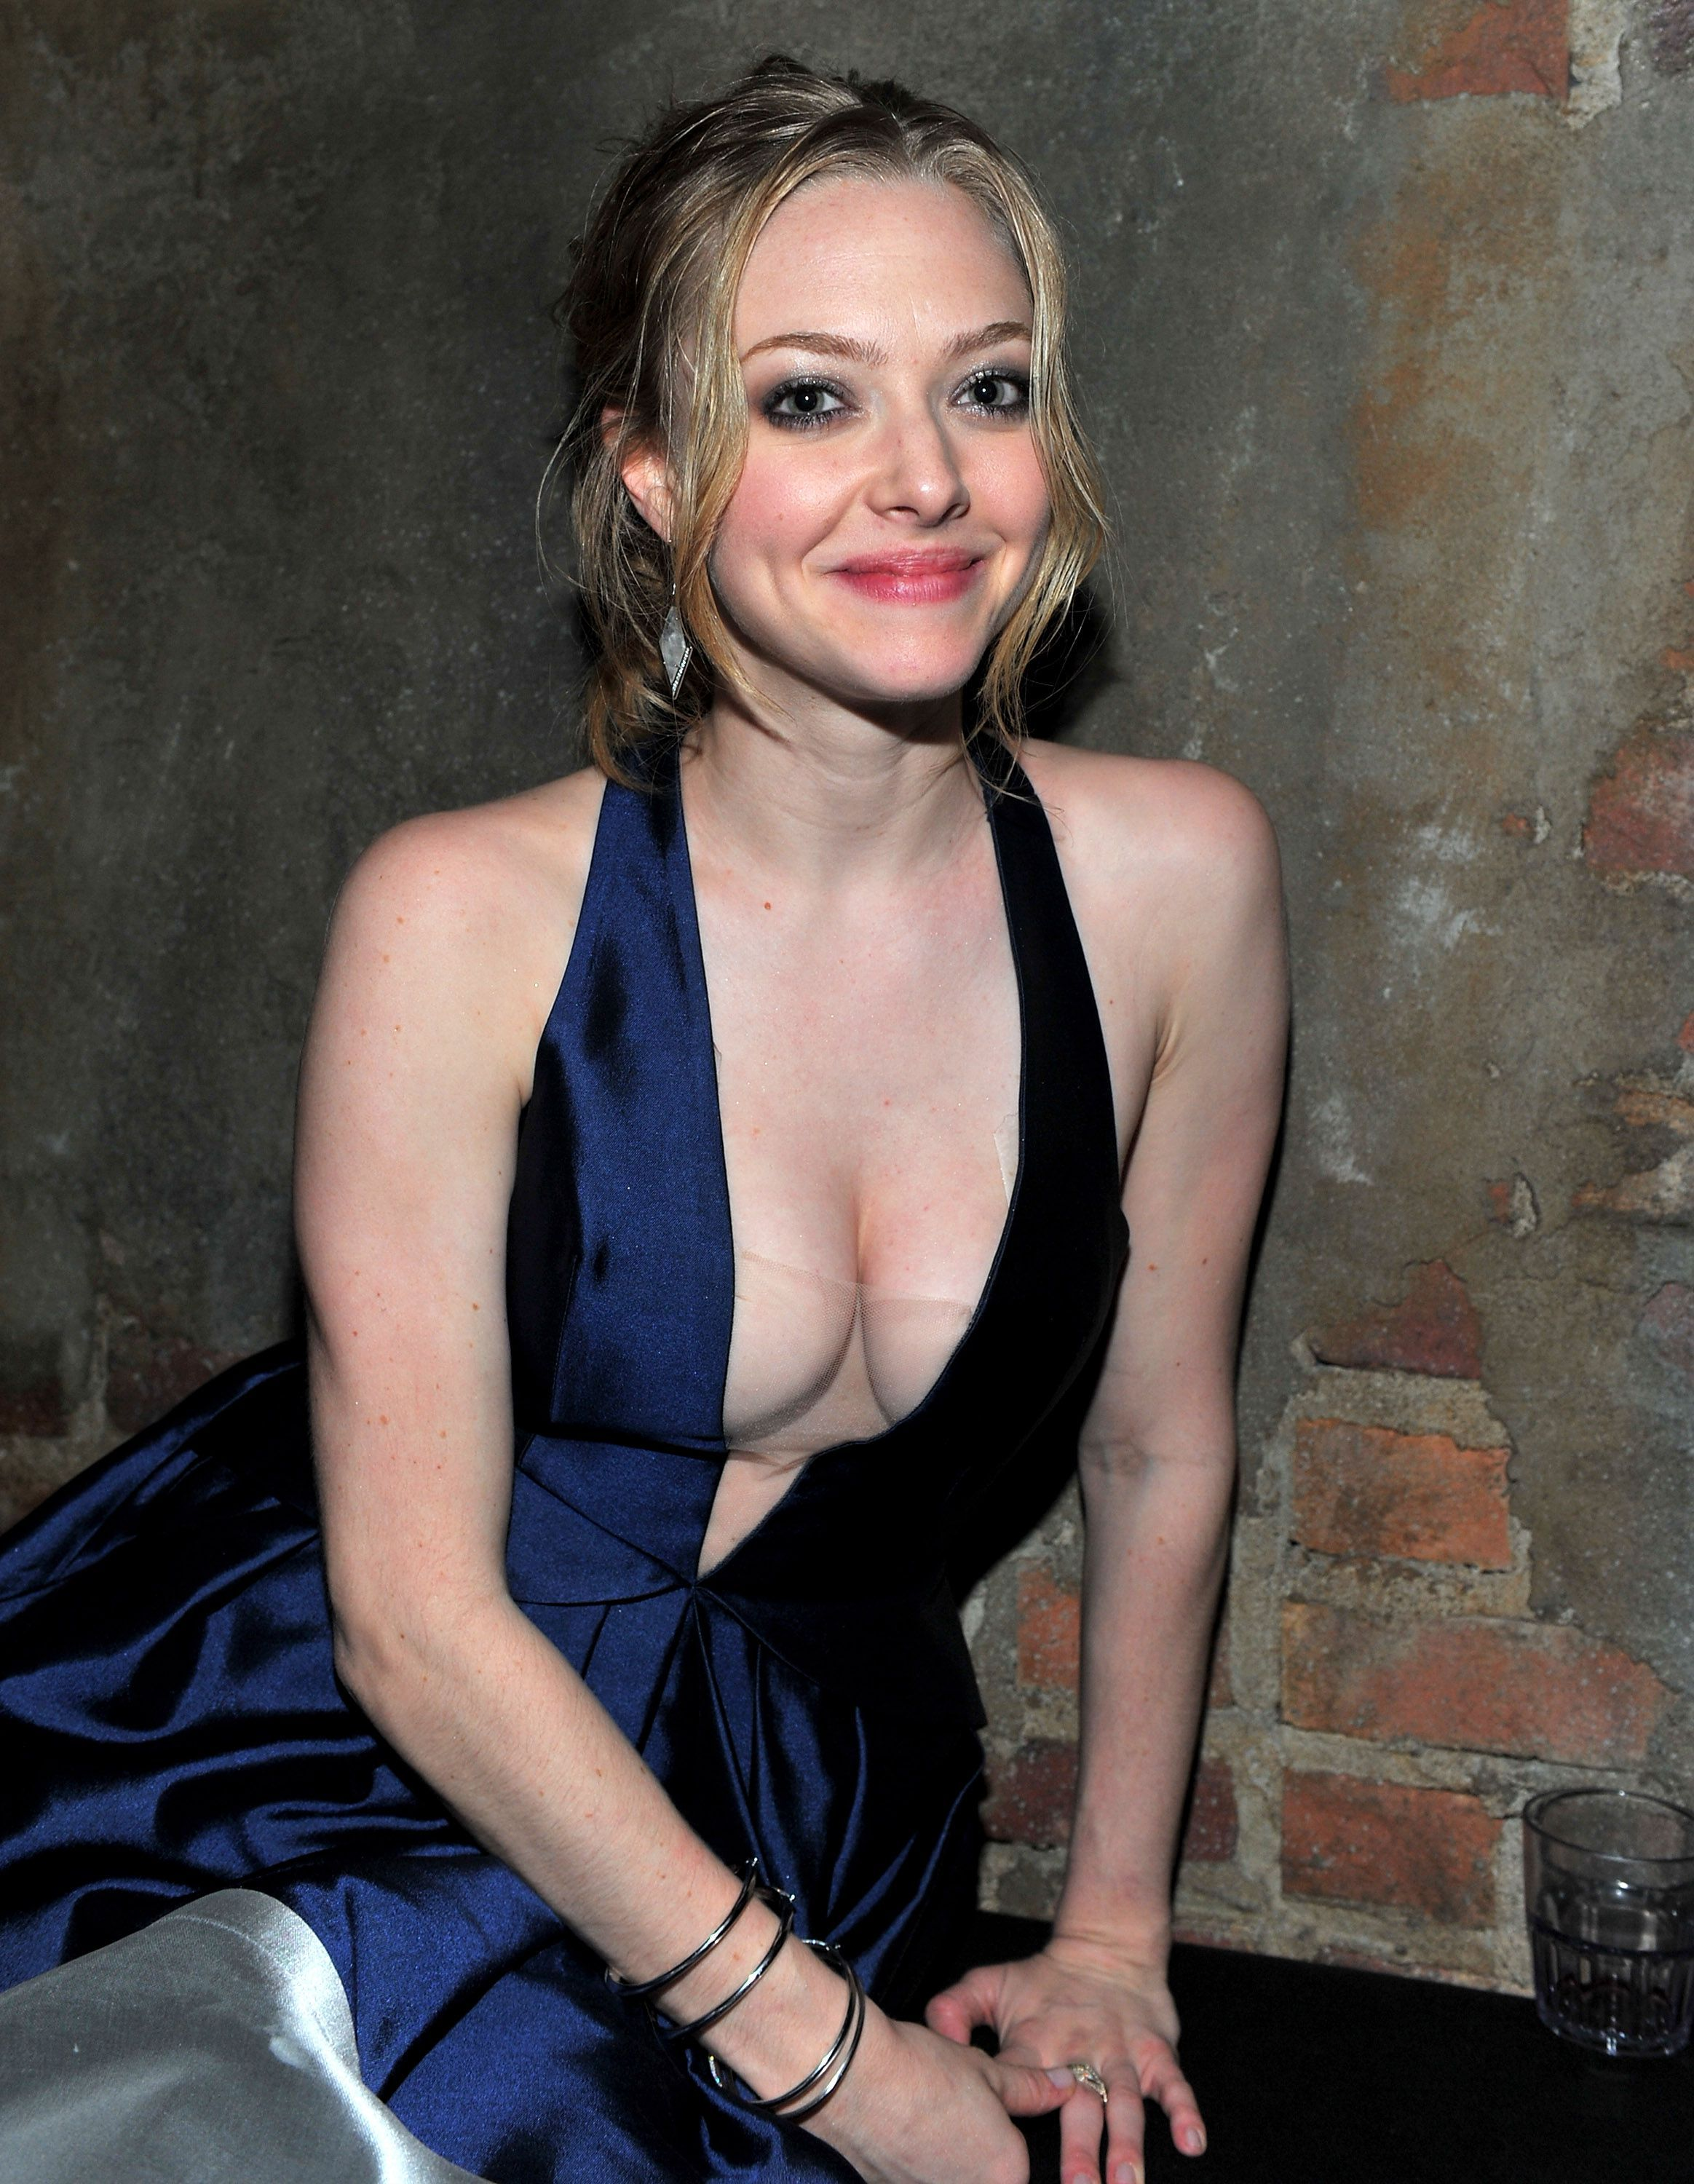 Amanda Seyfried Hot Video 49 hot pictures of amanda seyfried will make you her biggest